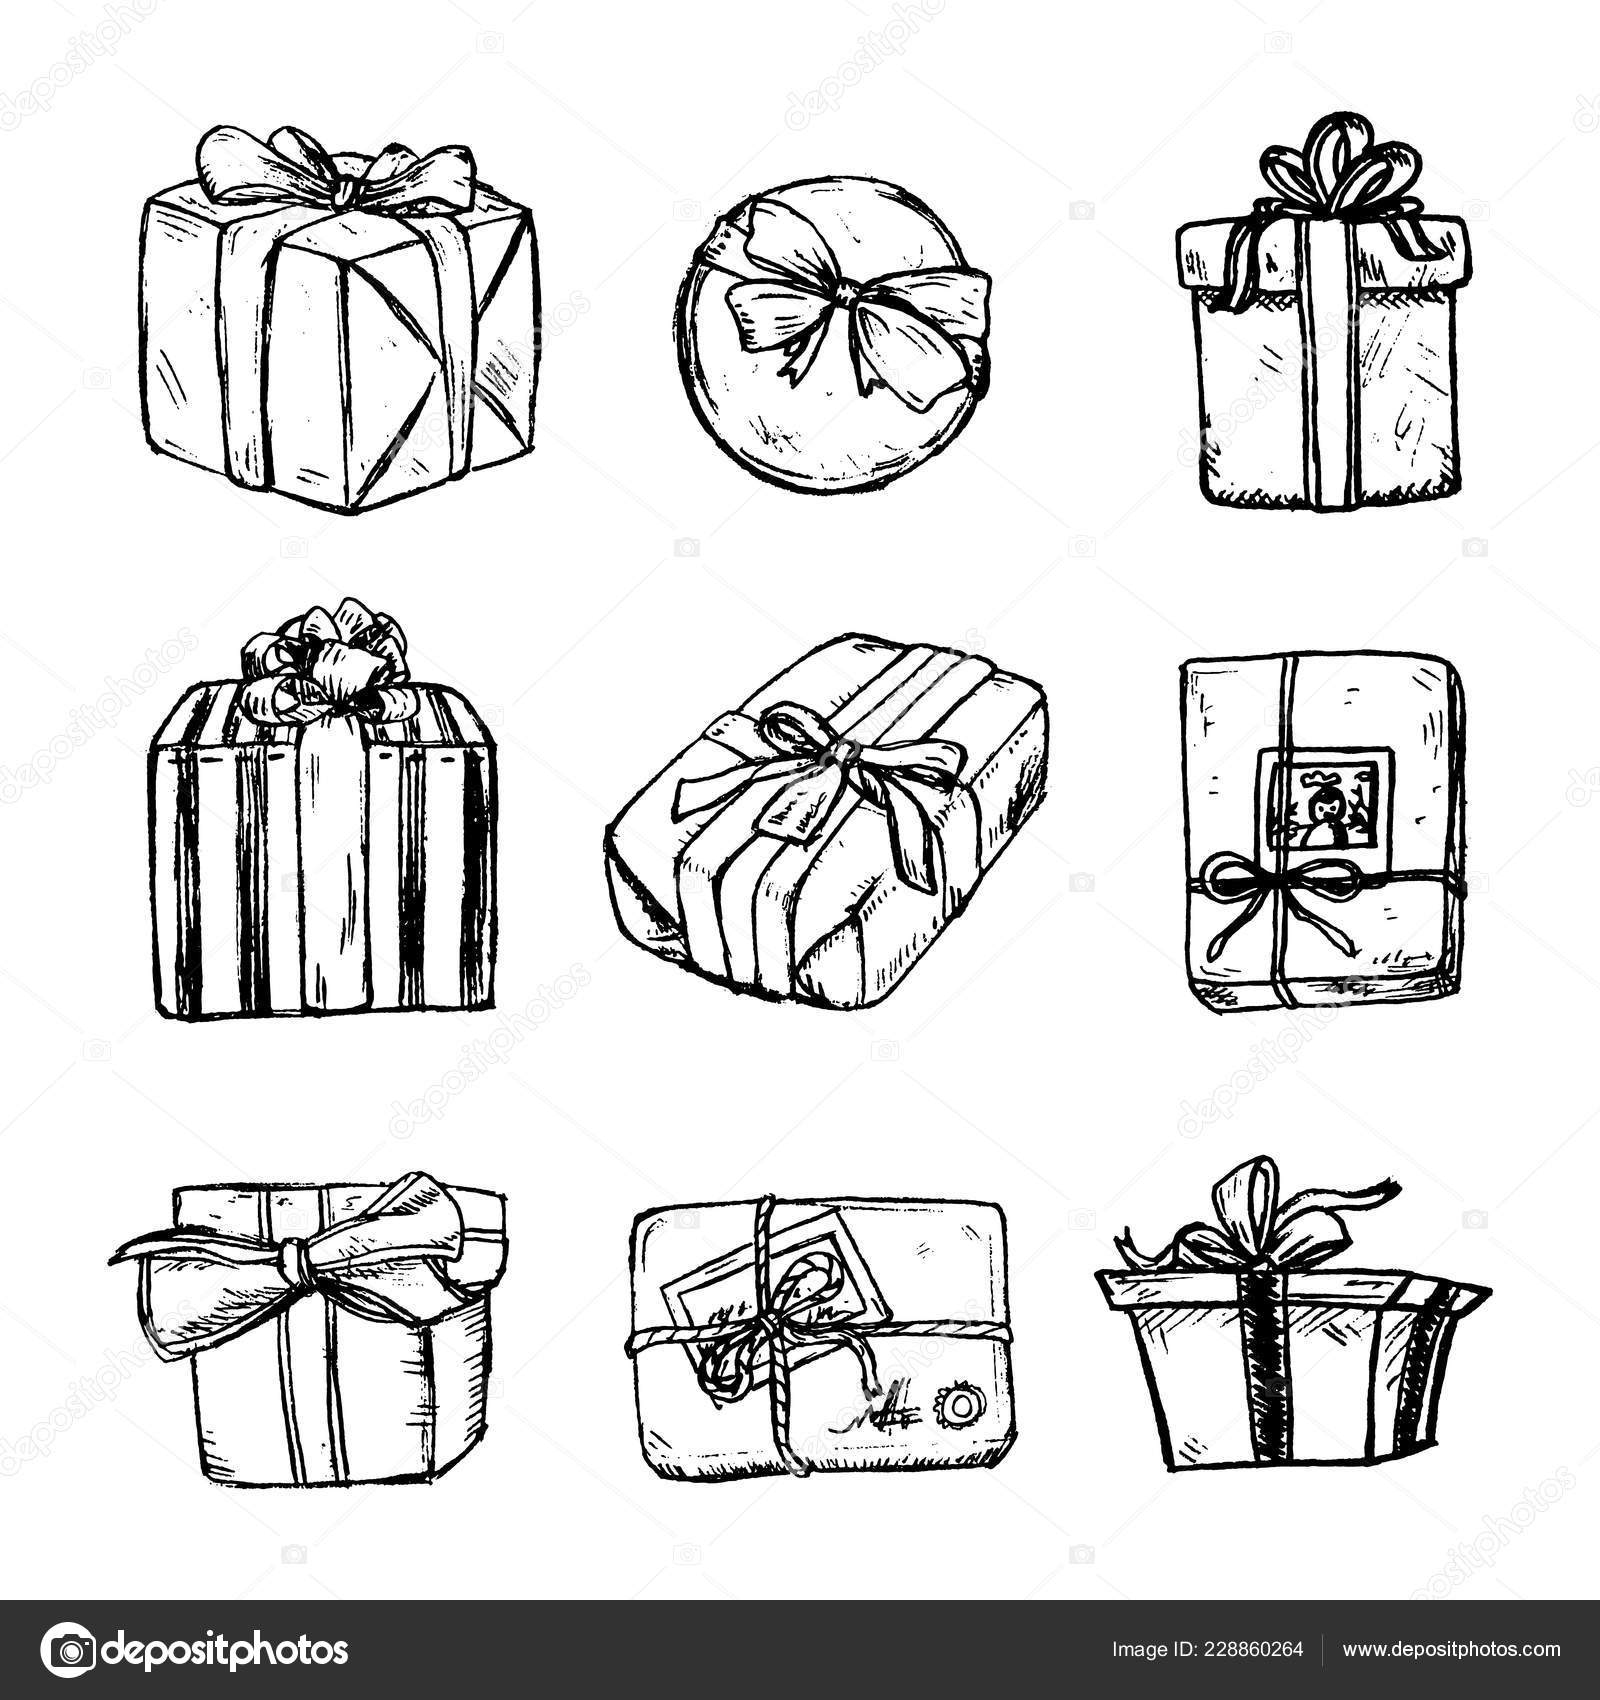 Set of pencil sketch of present box with a bow and ribbon gift boxes with string and bow hand drawn realistic concept top view close up drawing isolated